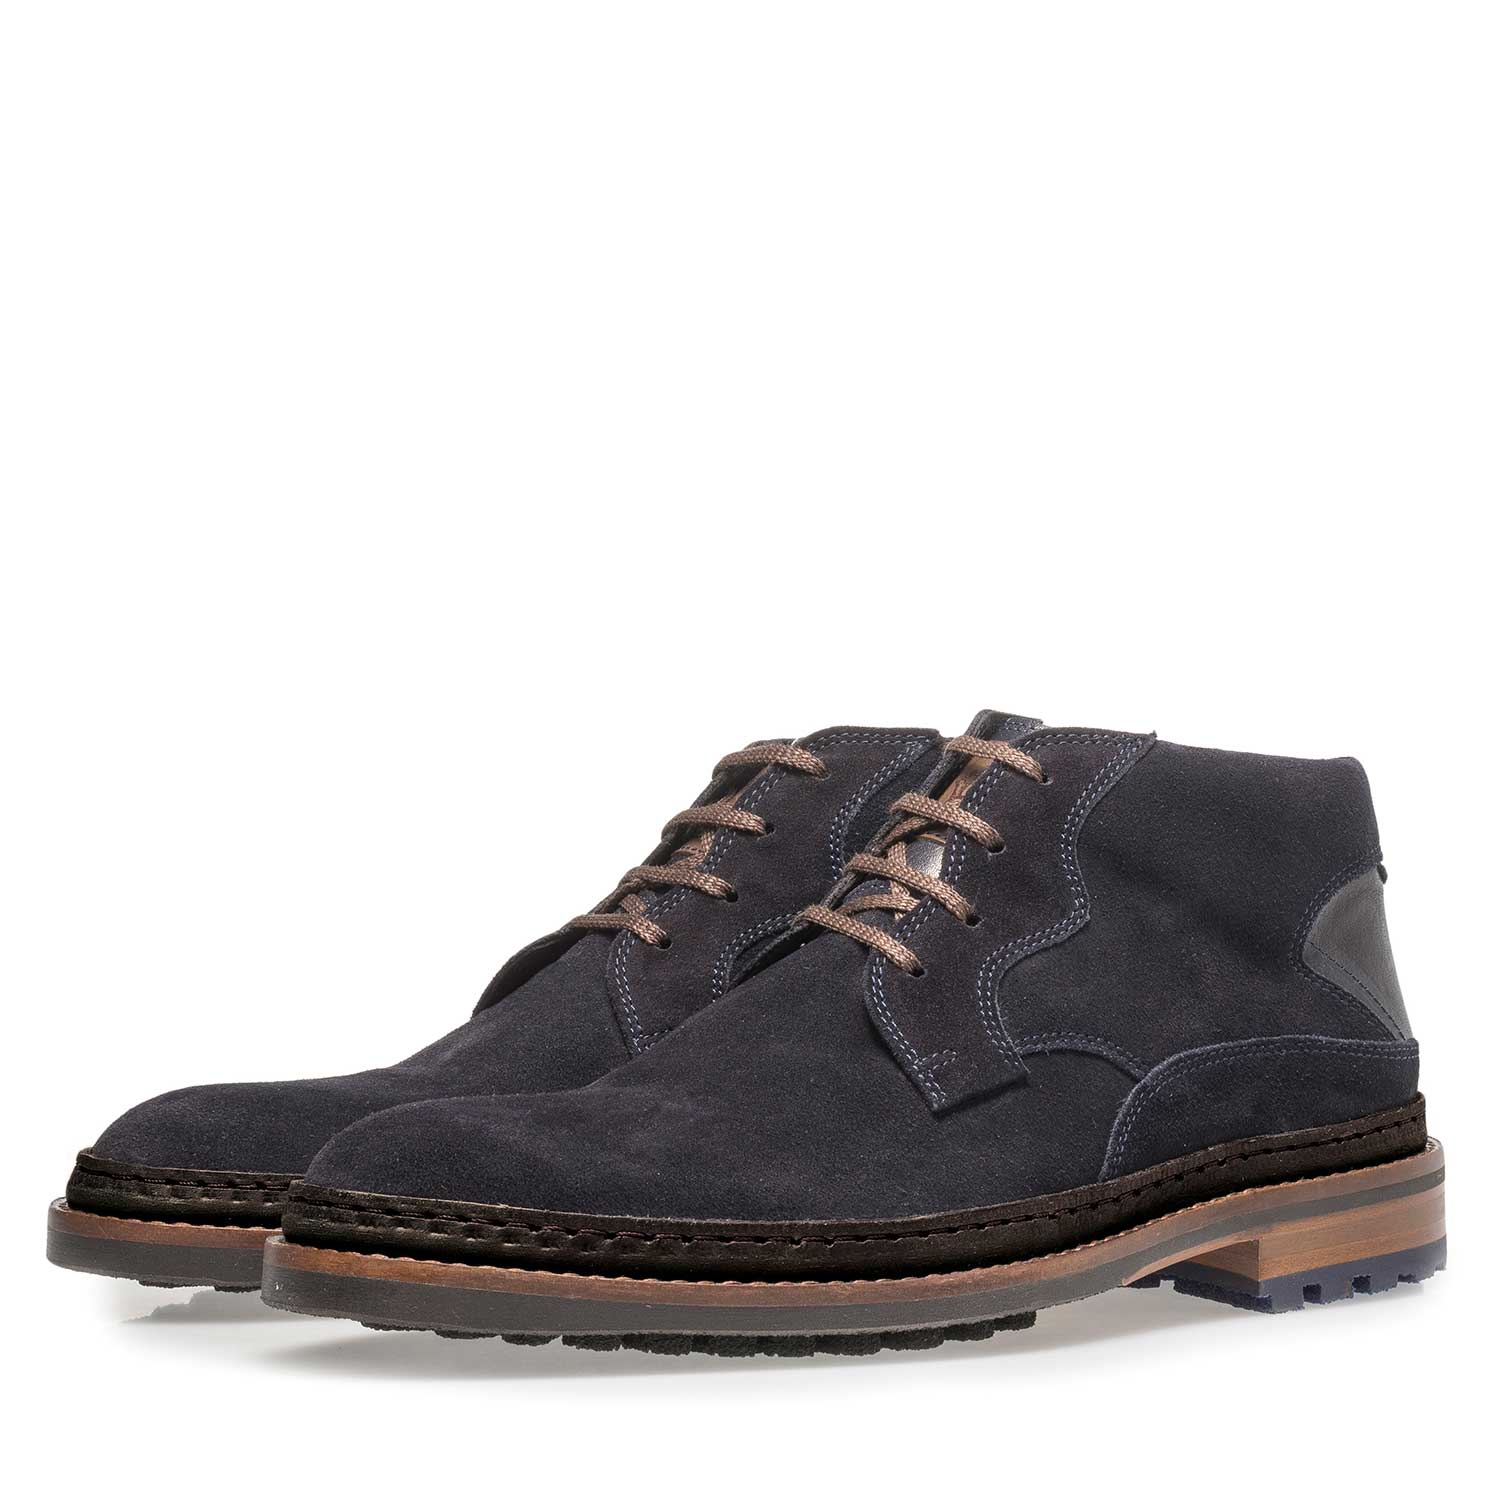 10509/02 - Dark blue suede lace boot